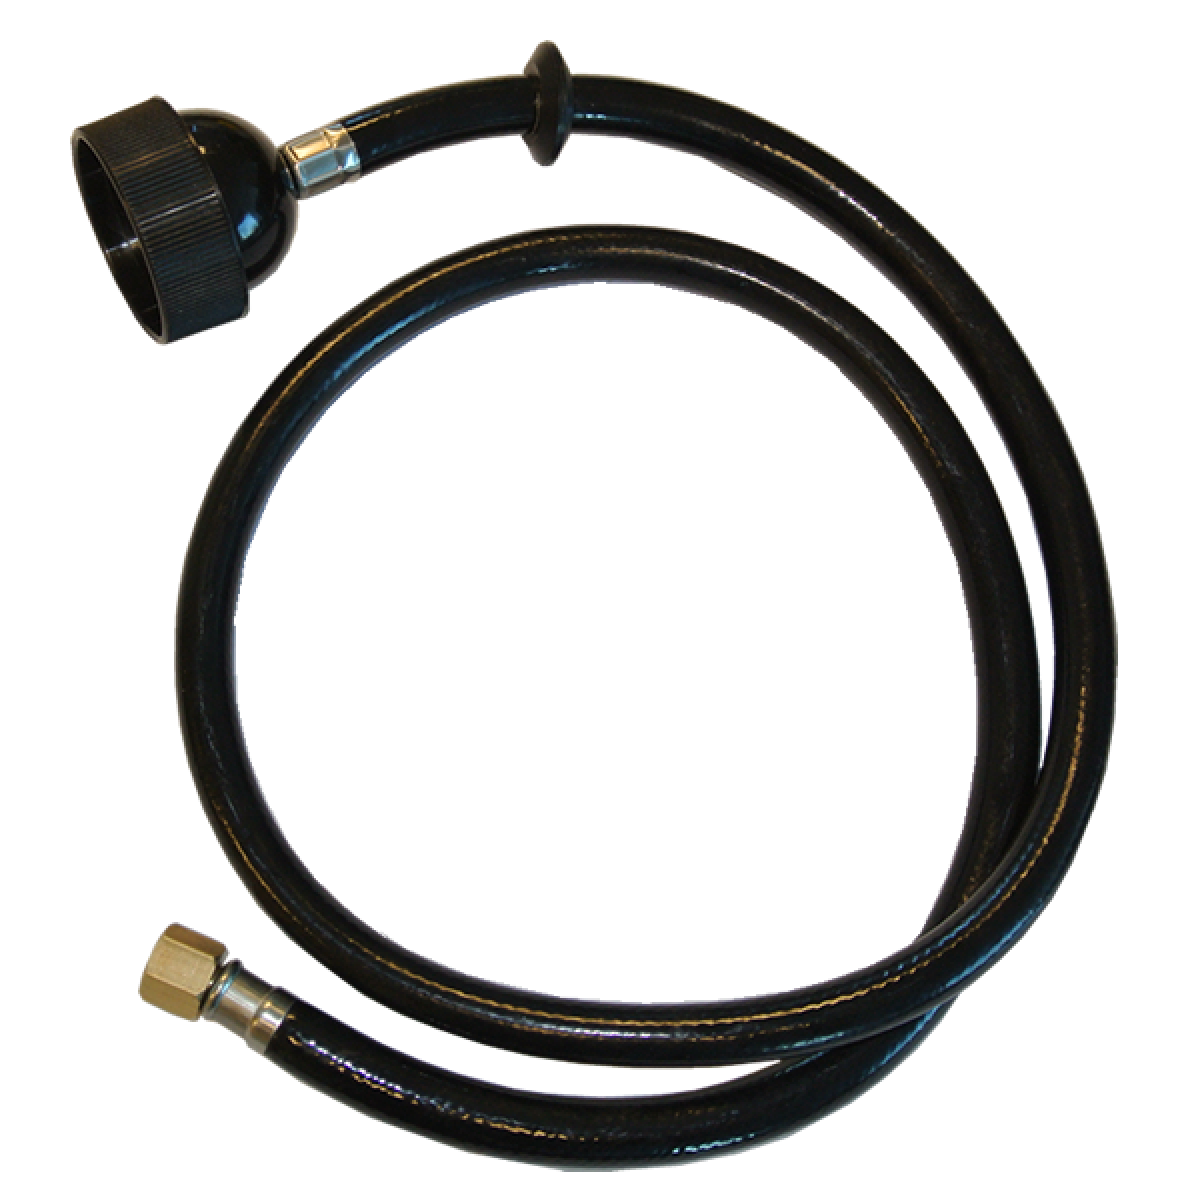 UPC Approved Sprayer with Hose (G-116)